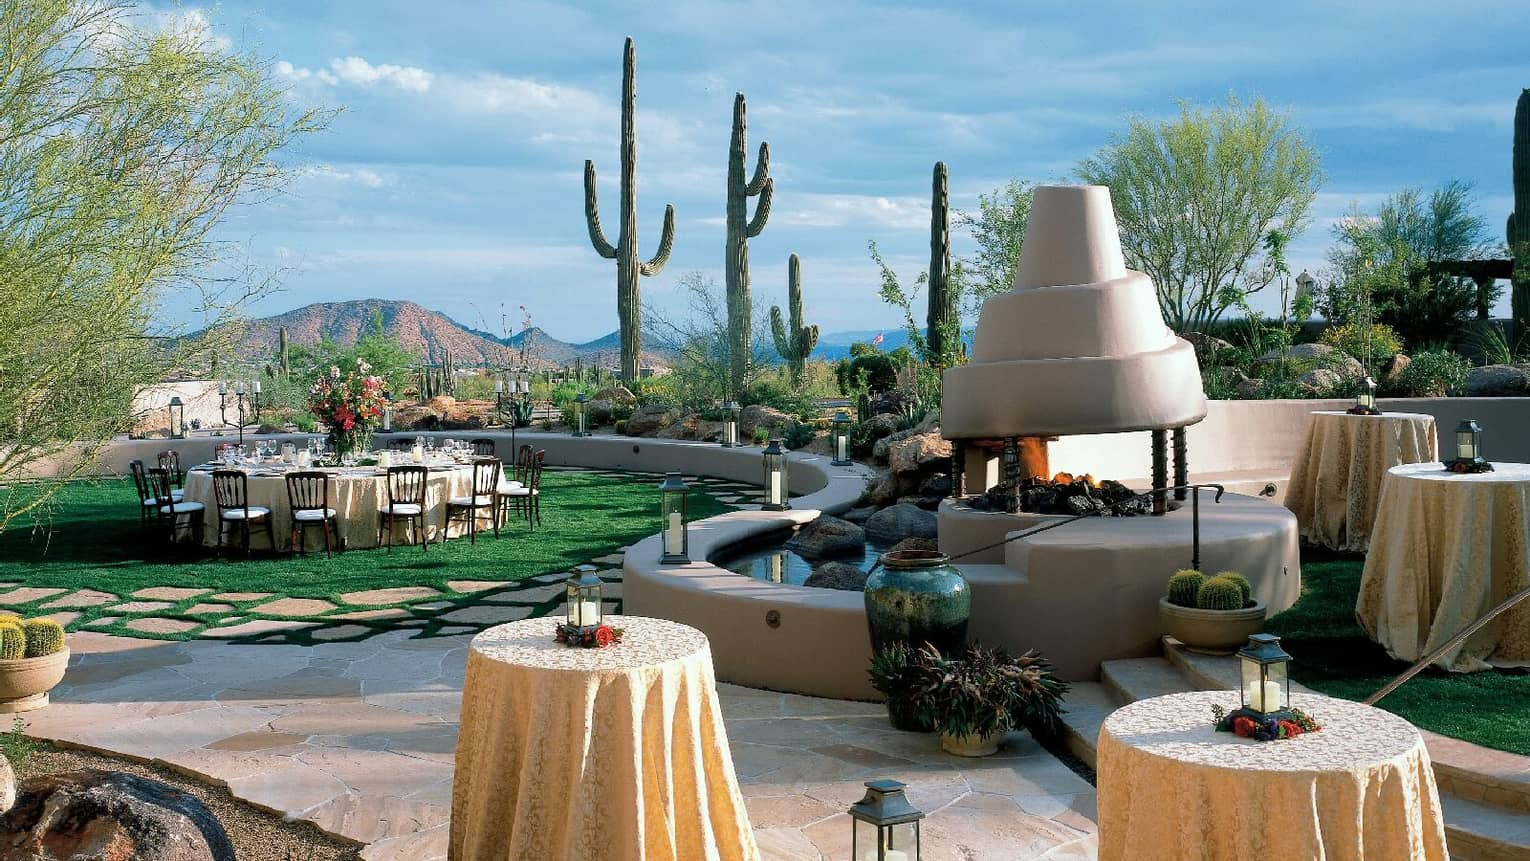 Troon Lawn reception tables on sunny lawn by spiral fireplace and wall, tall cacti